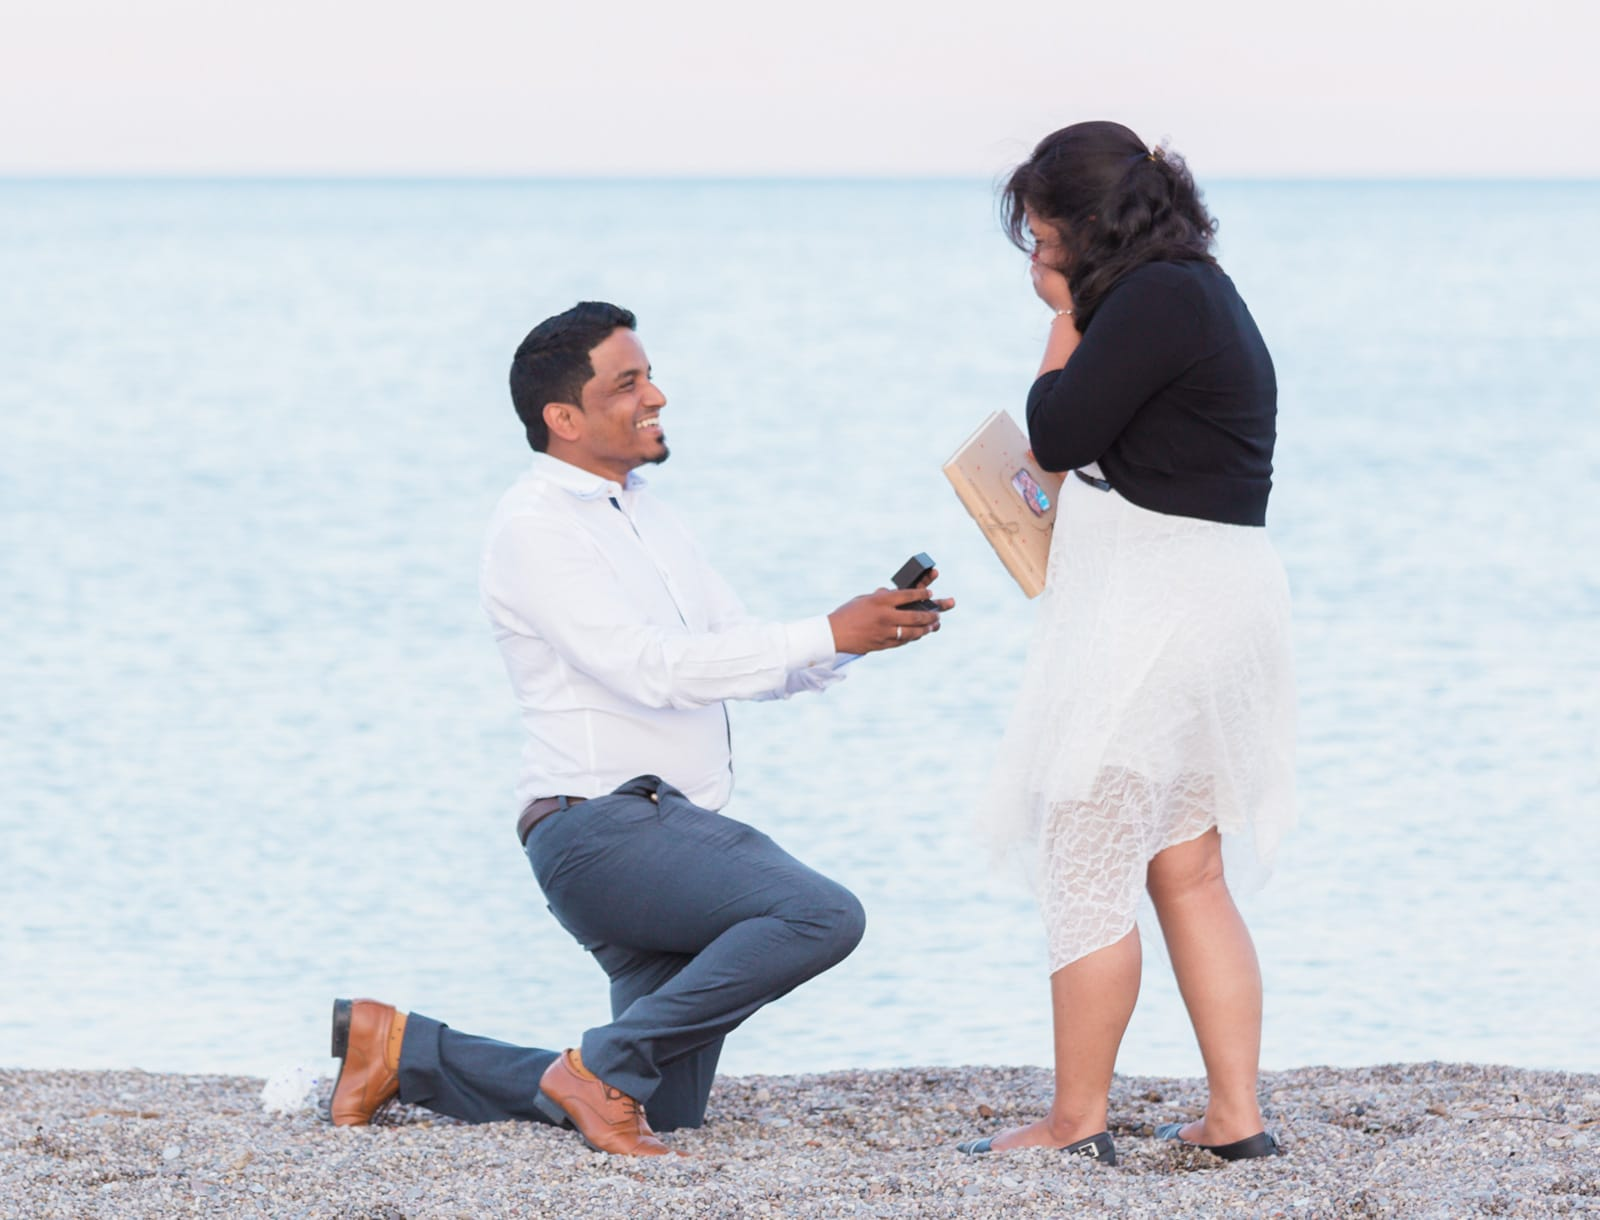 A Romantic Sunset Surprise Proposal at the Beach: Ramiya + Kumaran